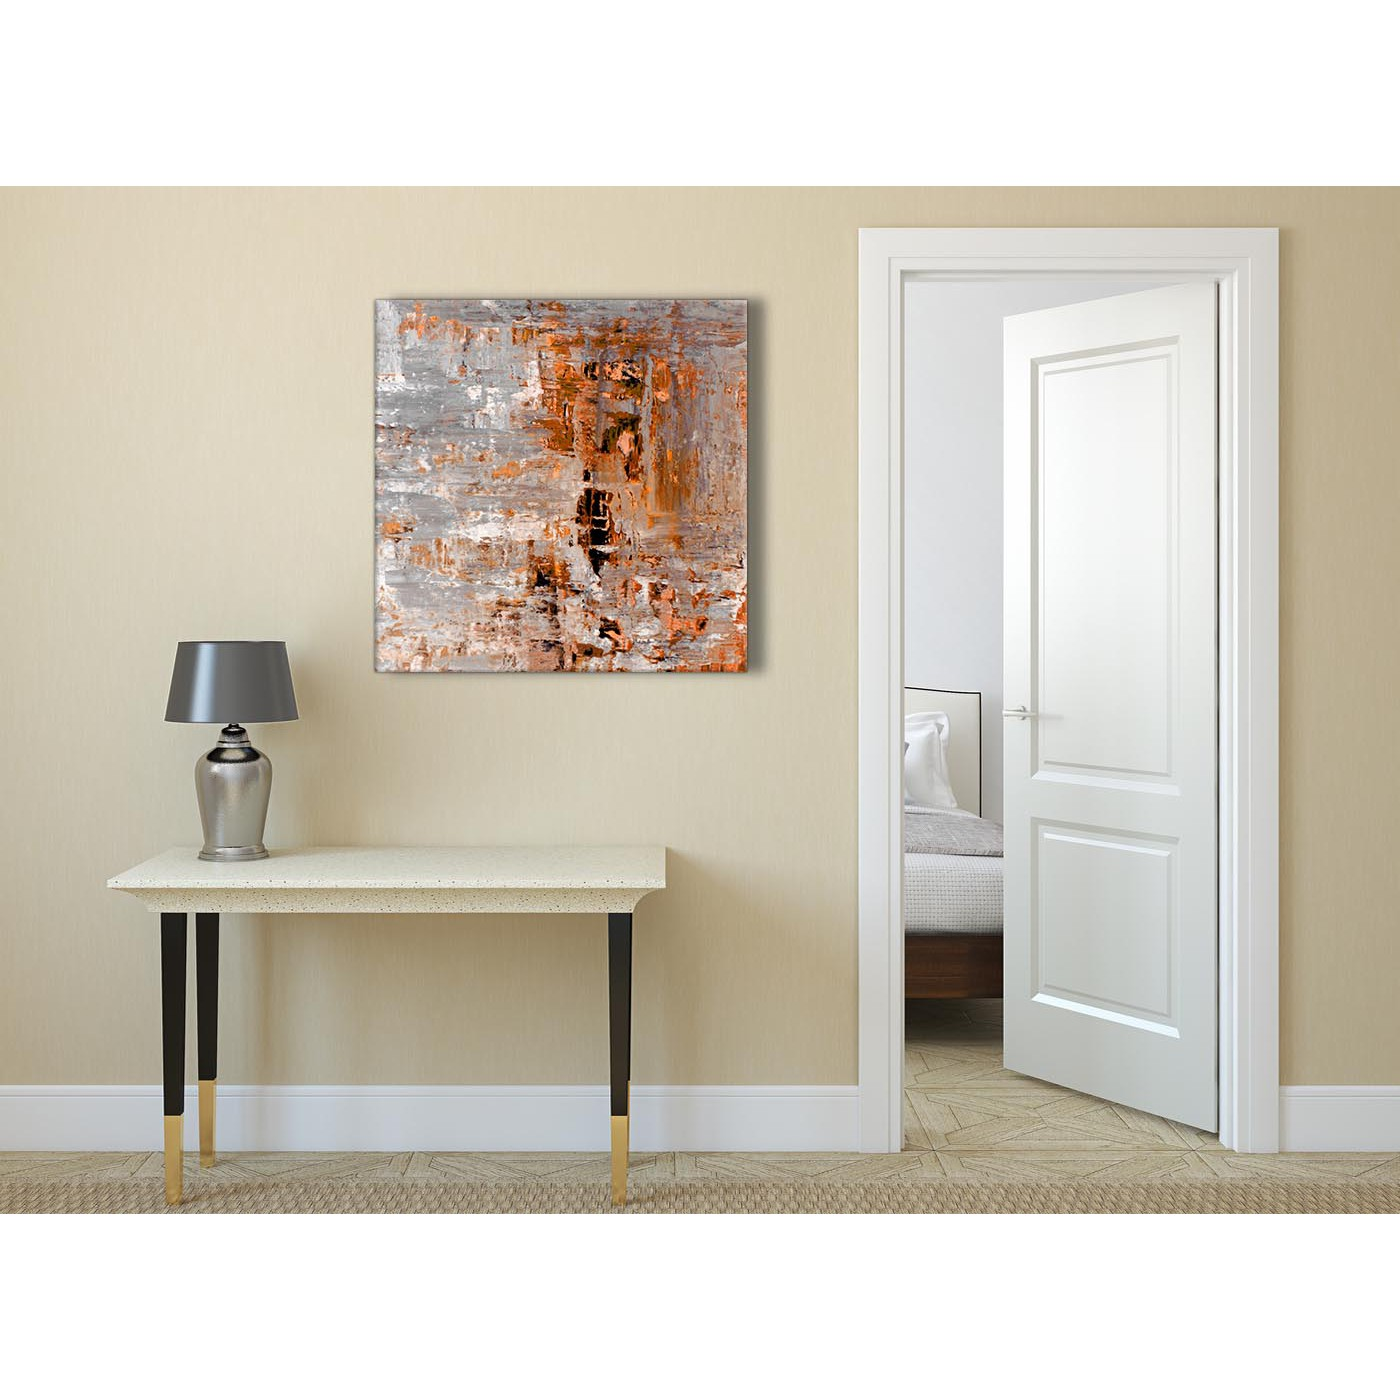 Burnt orange grey painting abstract living room canvas - Burnt orange paint for living room ...